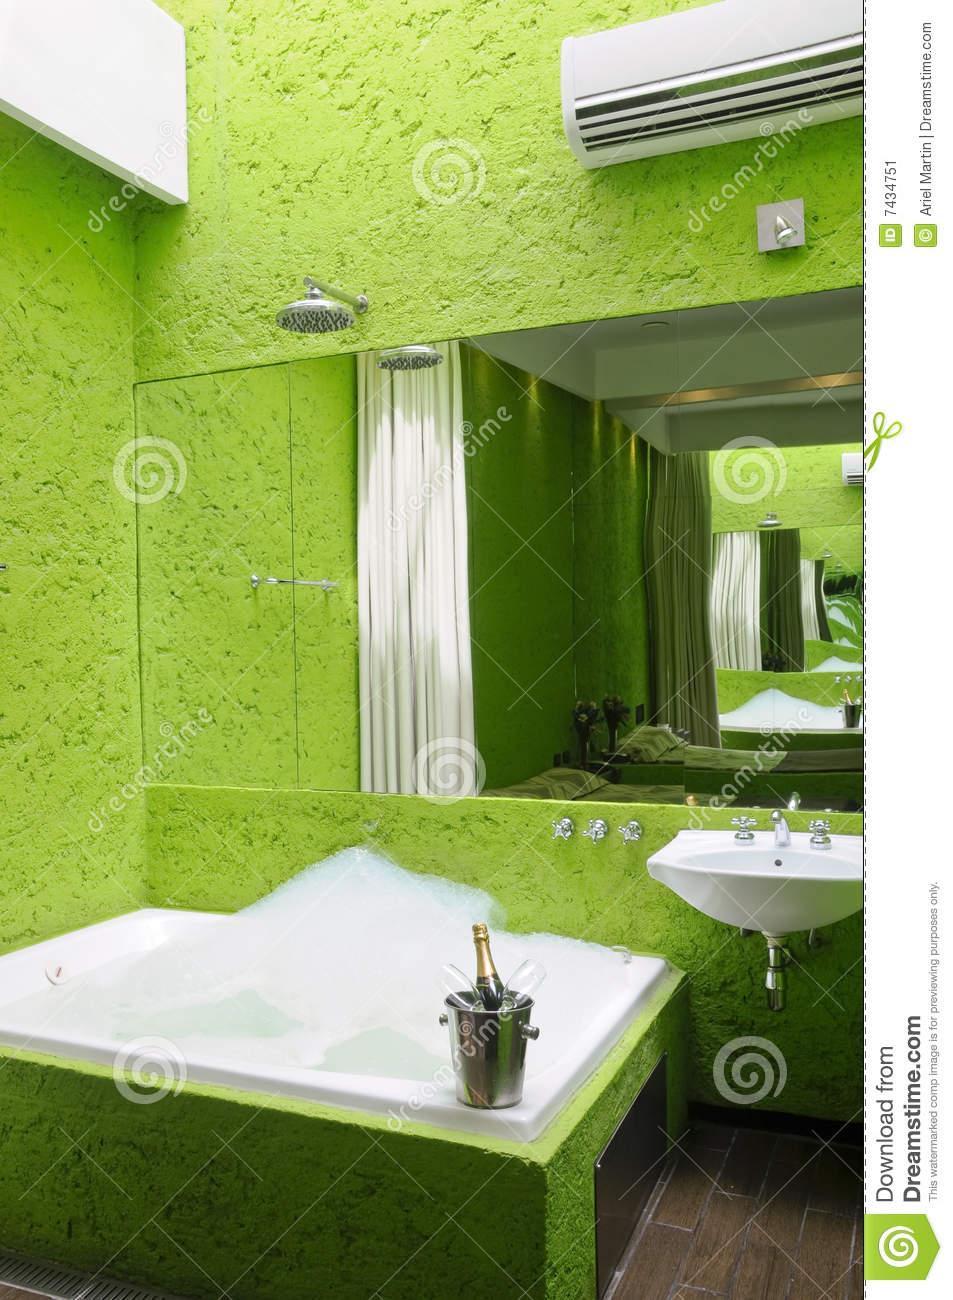 salle de bains verte avec le jacuzzi image stock image. Black Bedroom Furniture Sets. Home Design Ideas